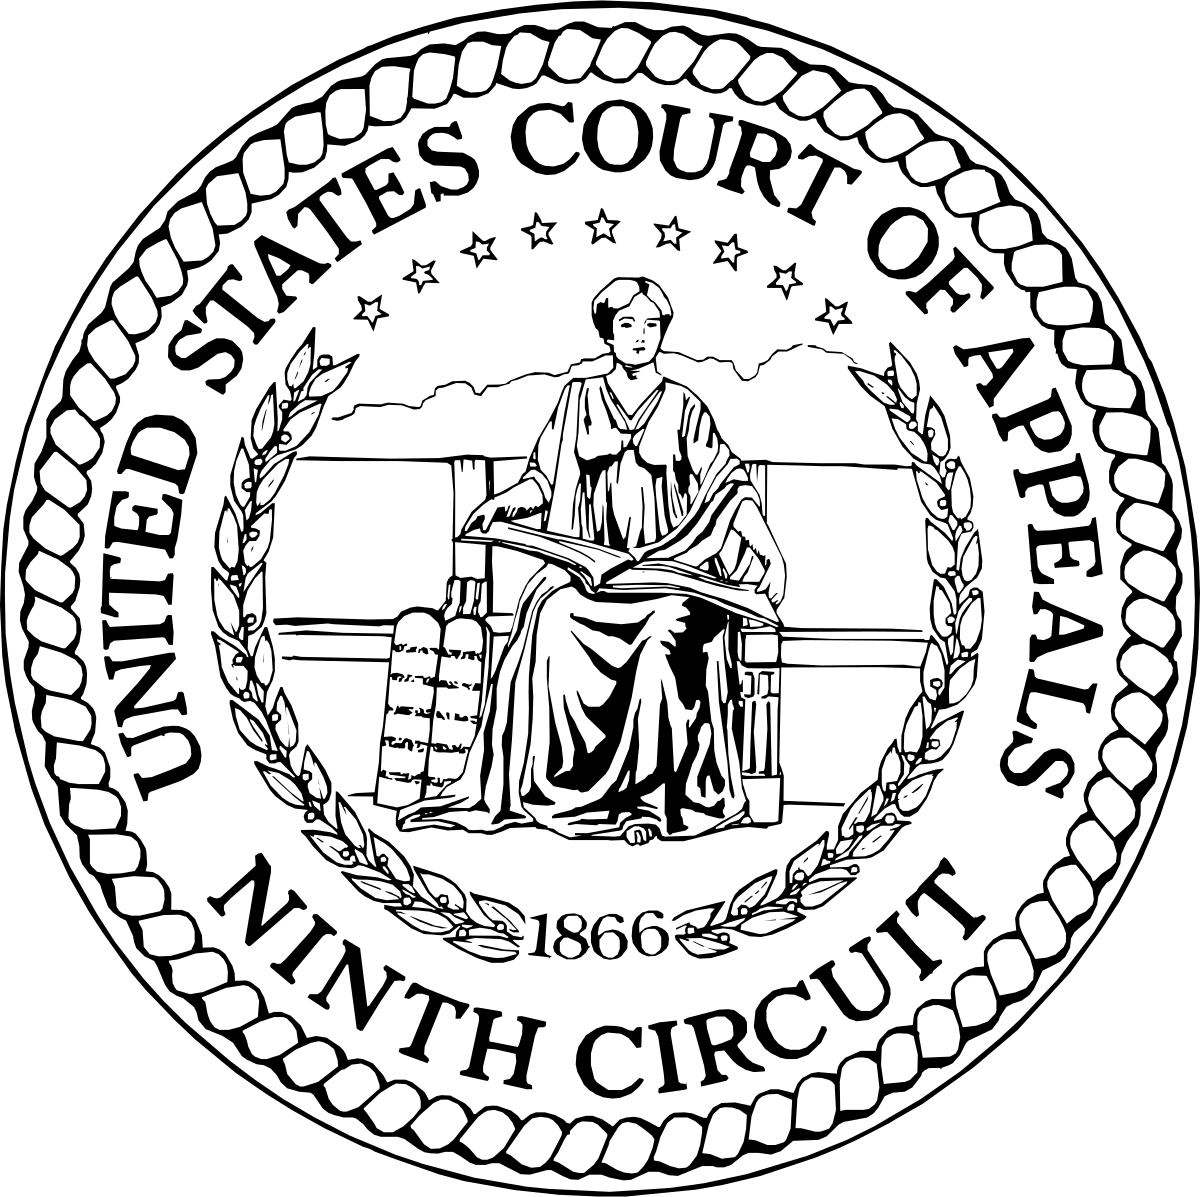 Cornfield drawing line. Th circuit upholds